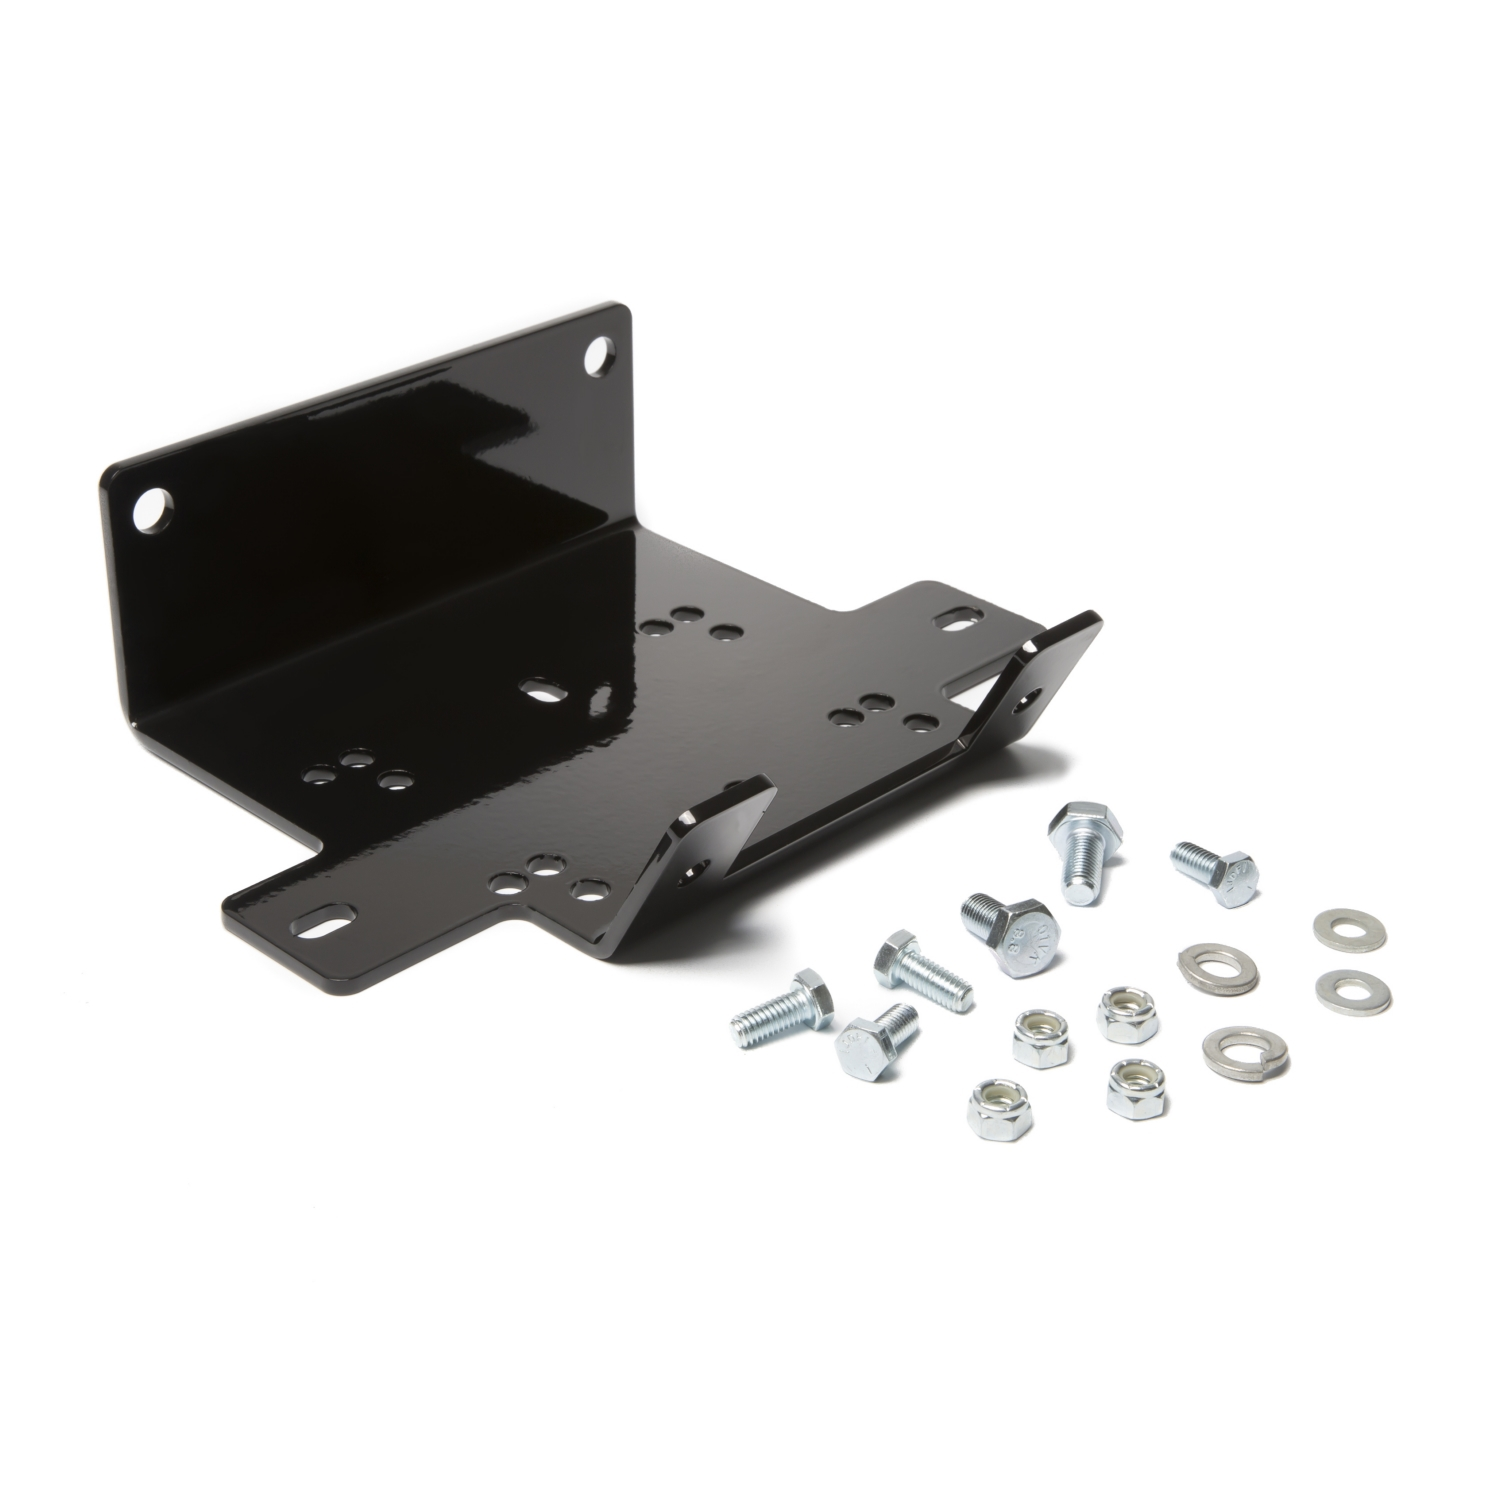 fuse atv winch mount kit 177041 [ 1500 x 1500 Pixel ]